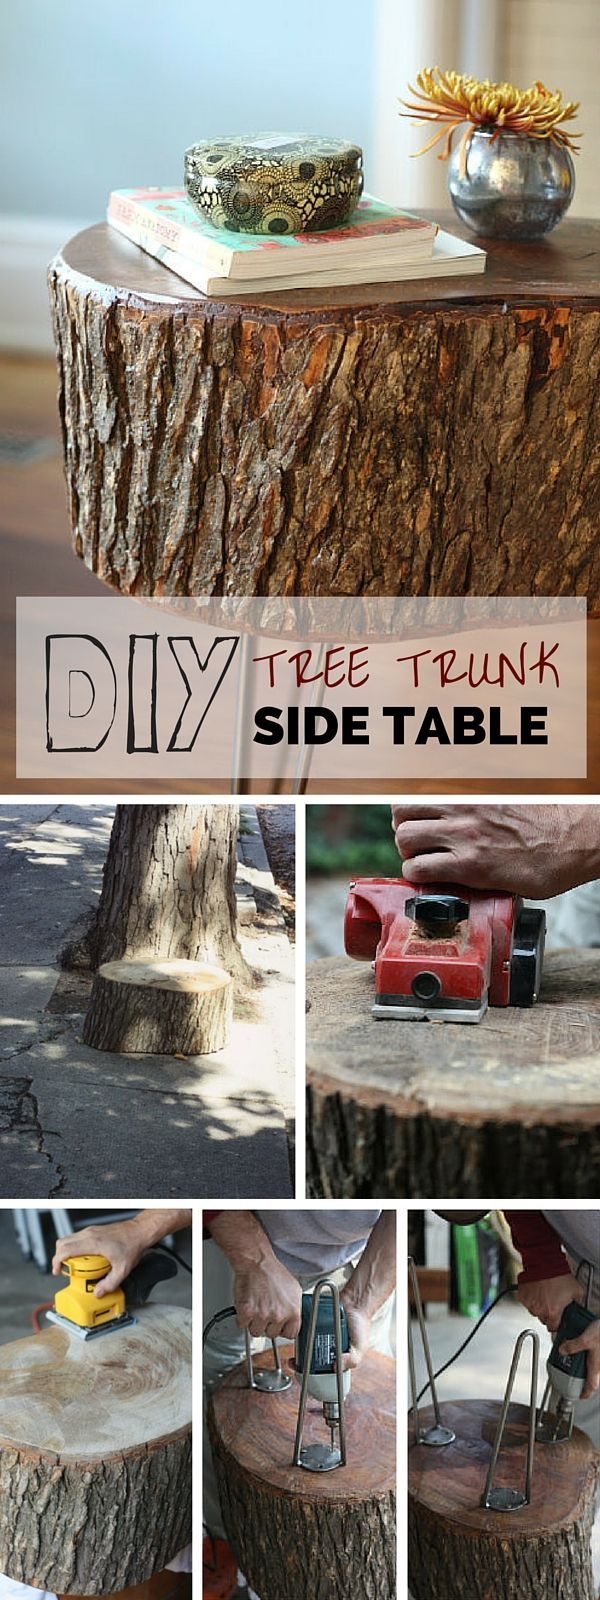 Check out the tutorial: #DIY Tree Trunk Side Table #crafts #rustic #homedecor